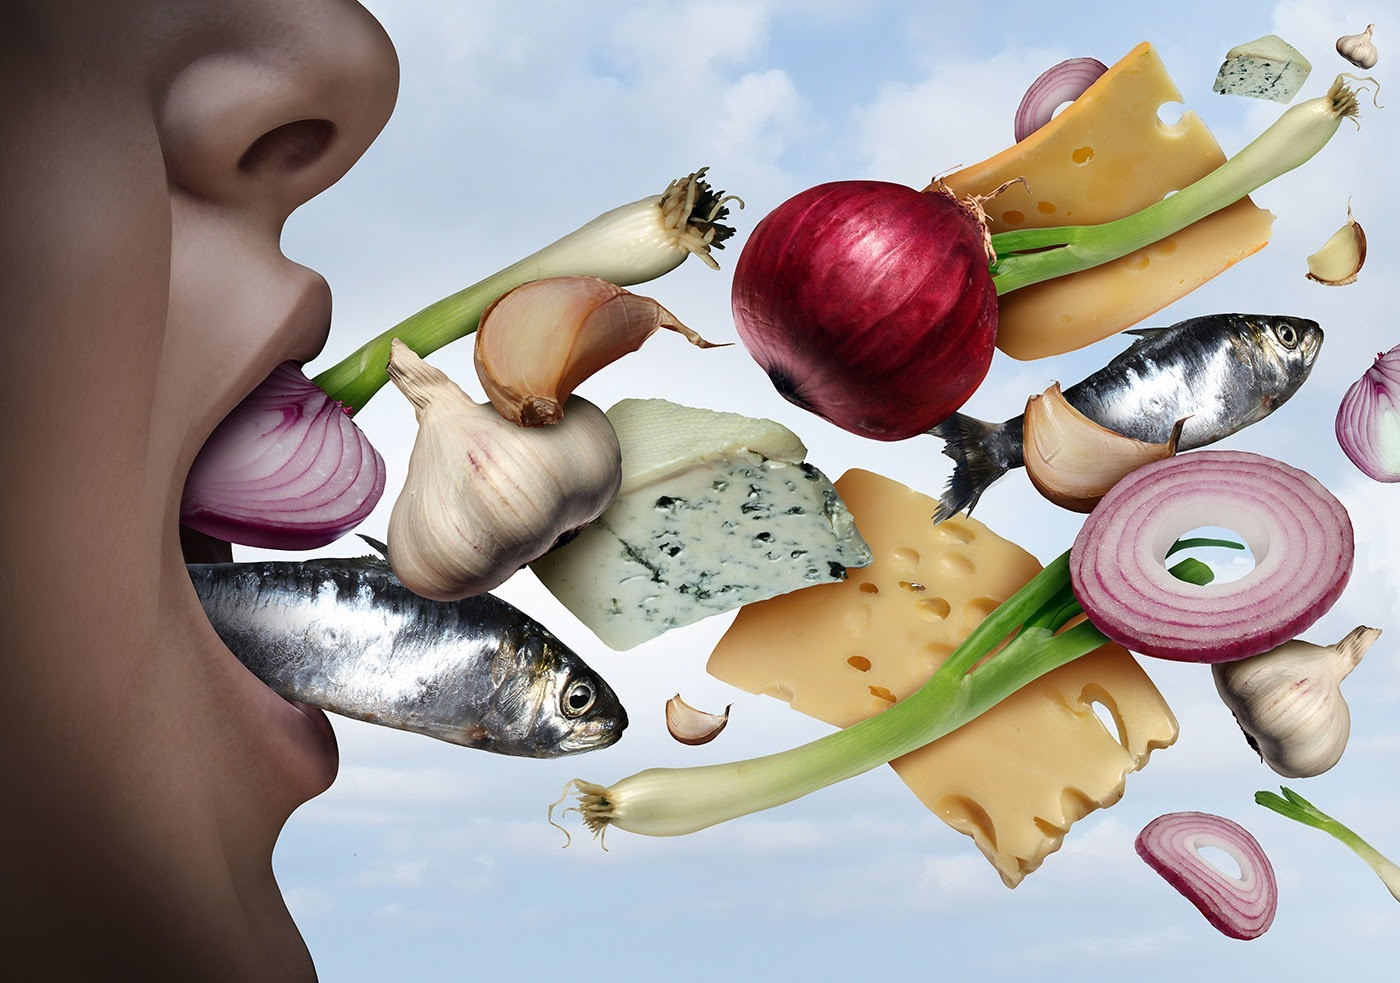 Avoid foods that cause bad breath